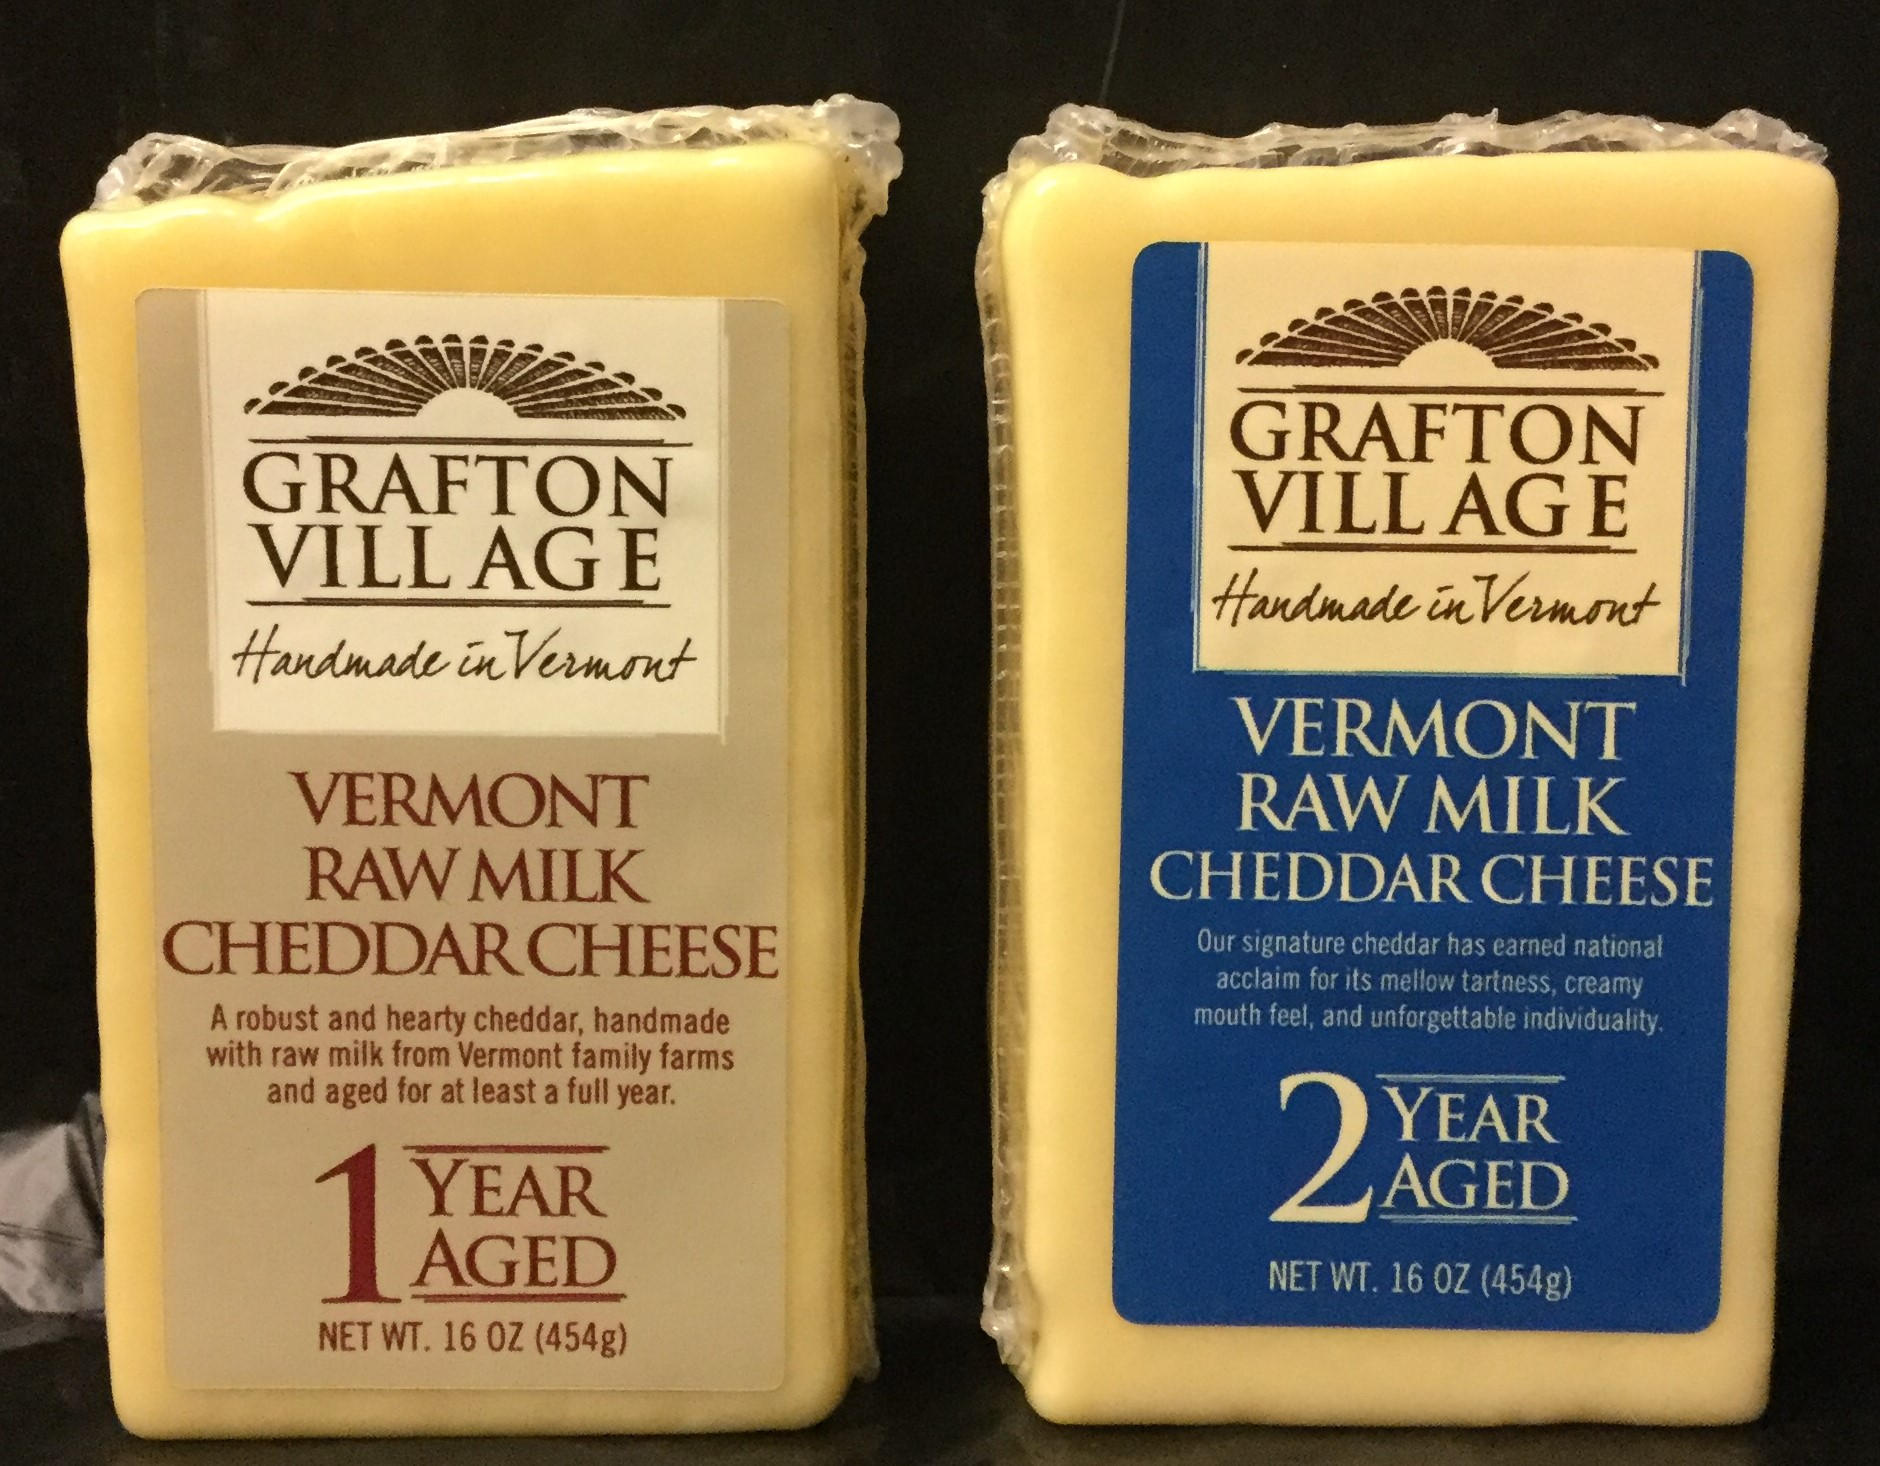 Grafton Village Vermont Raw Milk Cheddar Cheese